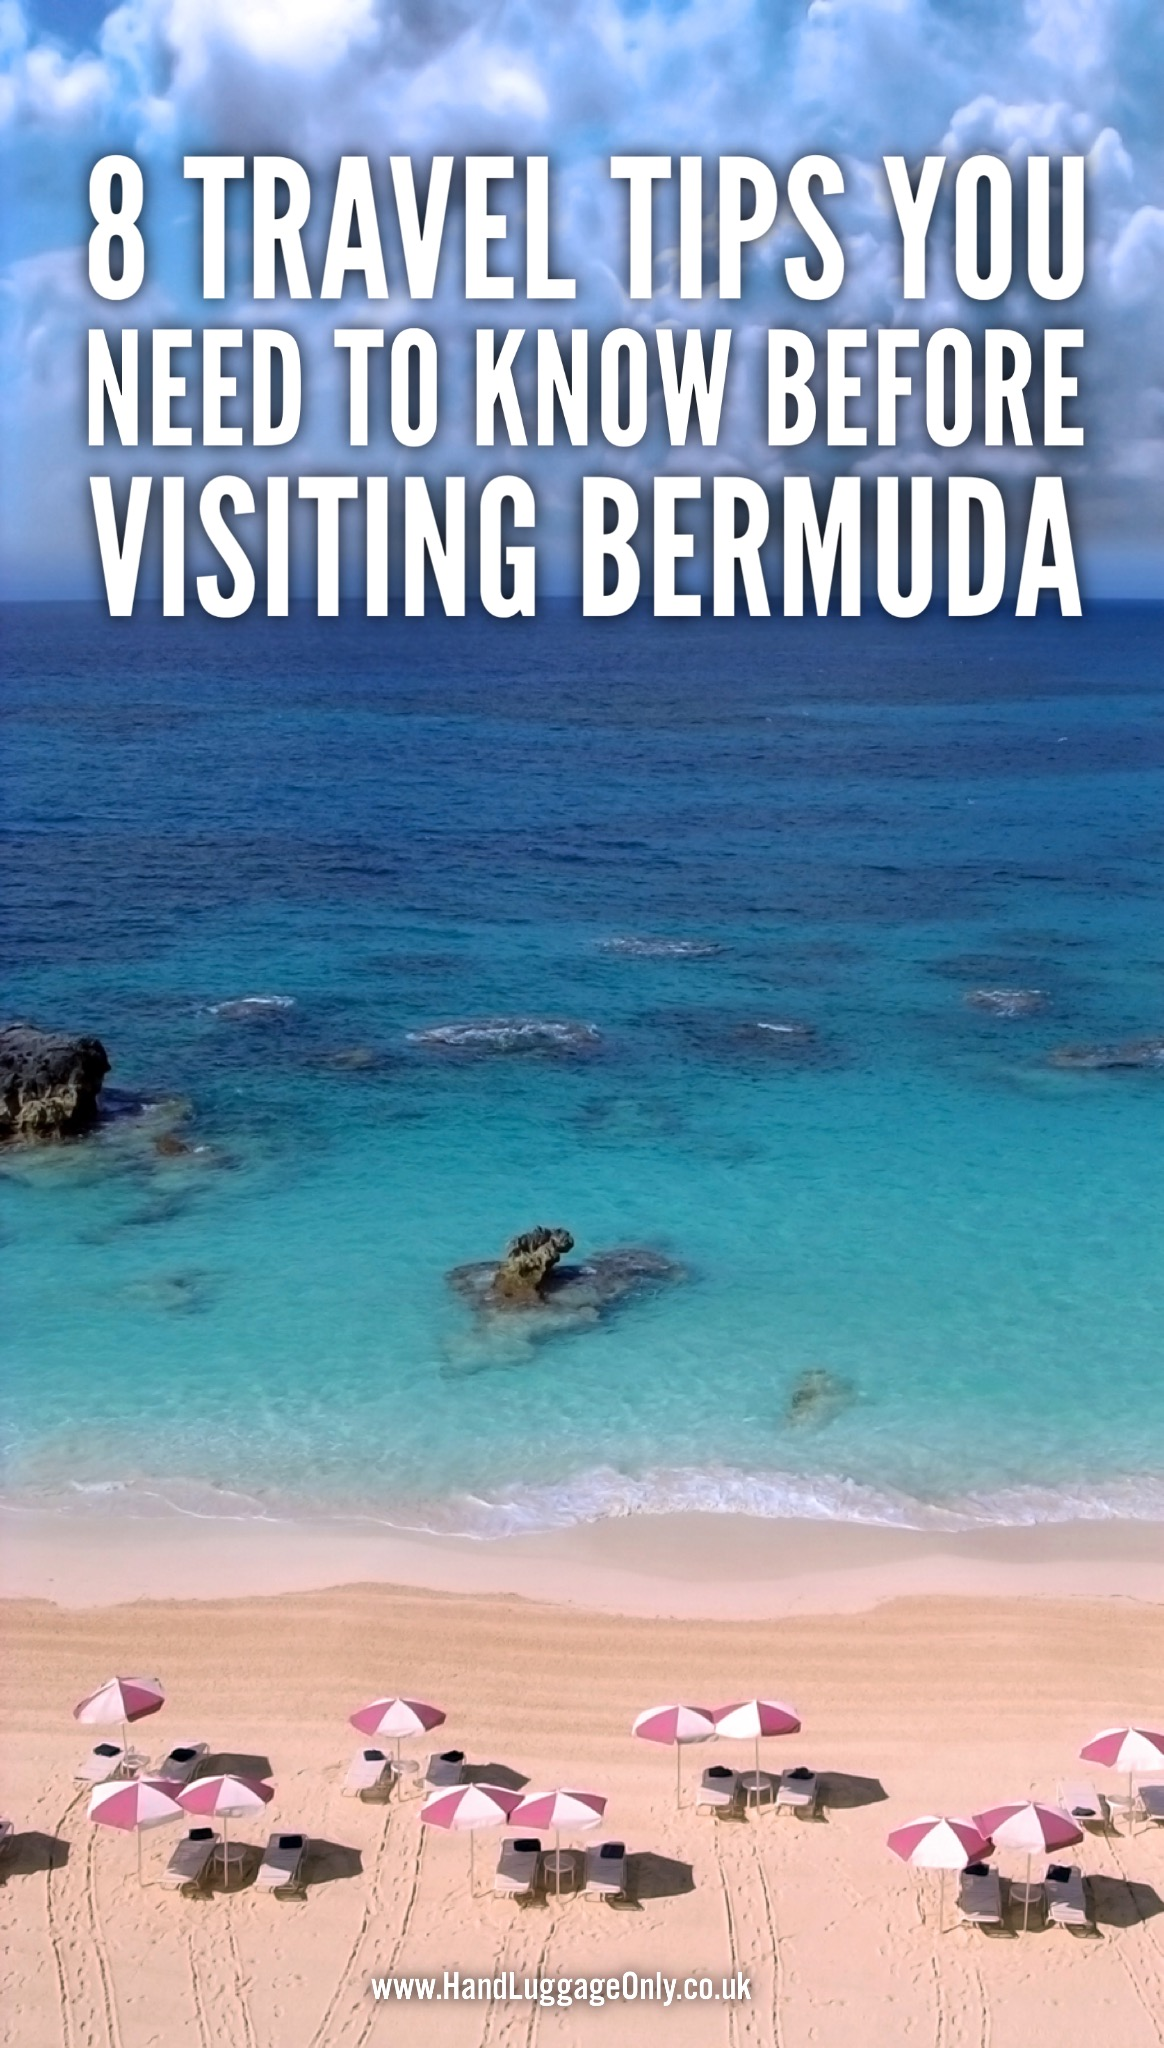 8 Travel Tips You Need To Know Before Visiting Bermuda (2)